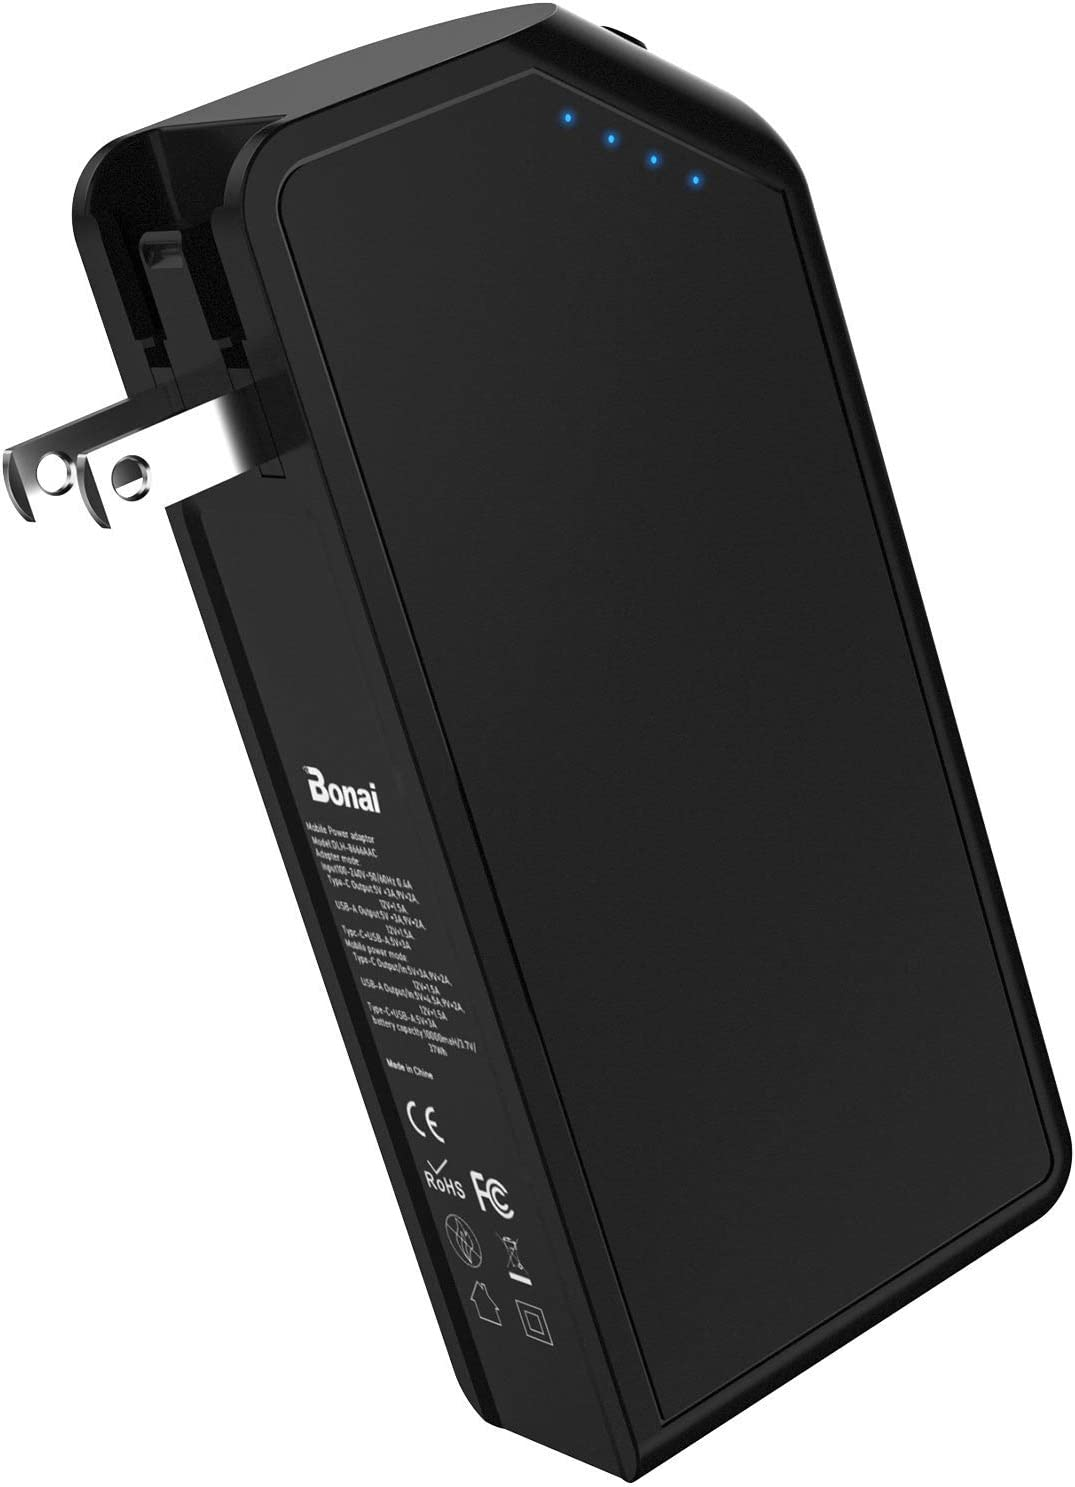 10000mAh Portable Charger USB C, BONAI PD 18W High Speed Portable Power Bank with Built-in AC Wall Plug External Battery Pack for iPhone 12, Samsung Galaxy and More, Black